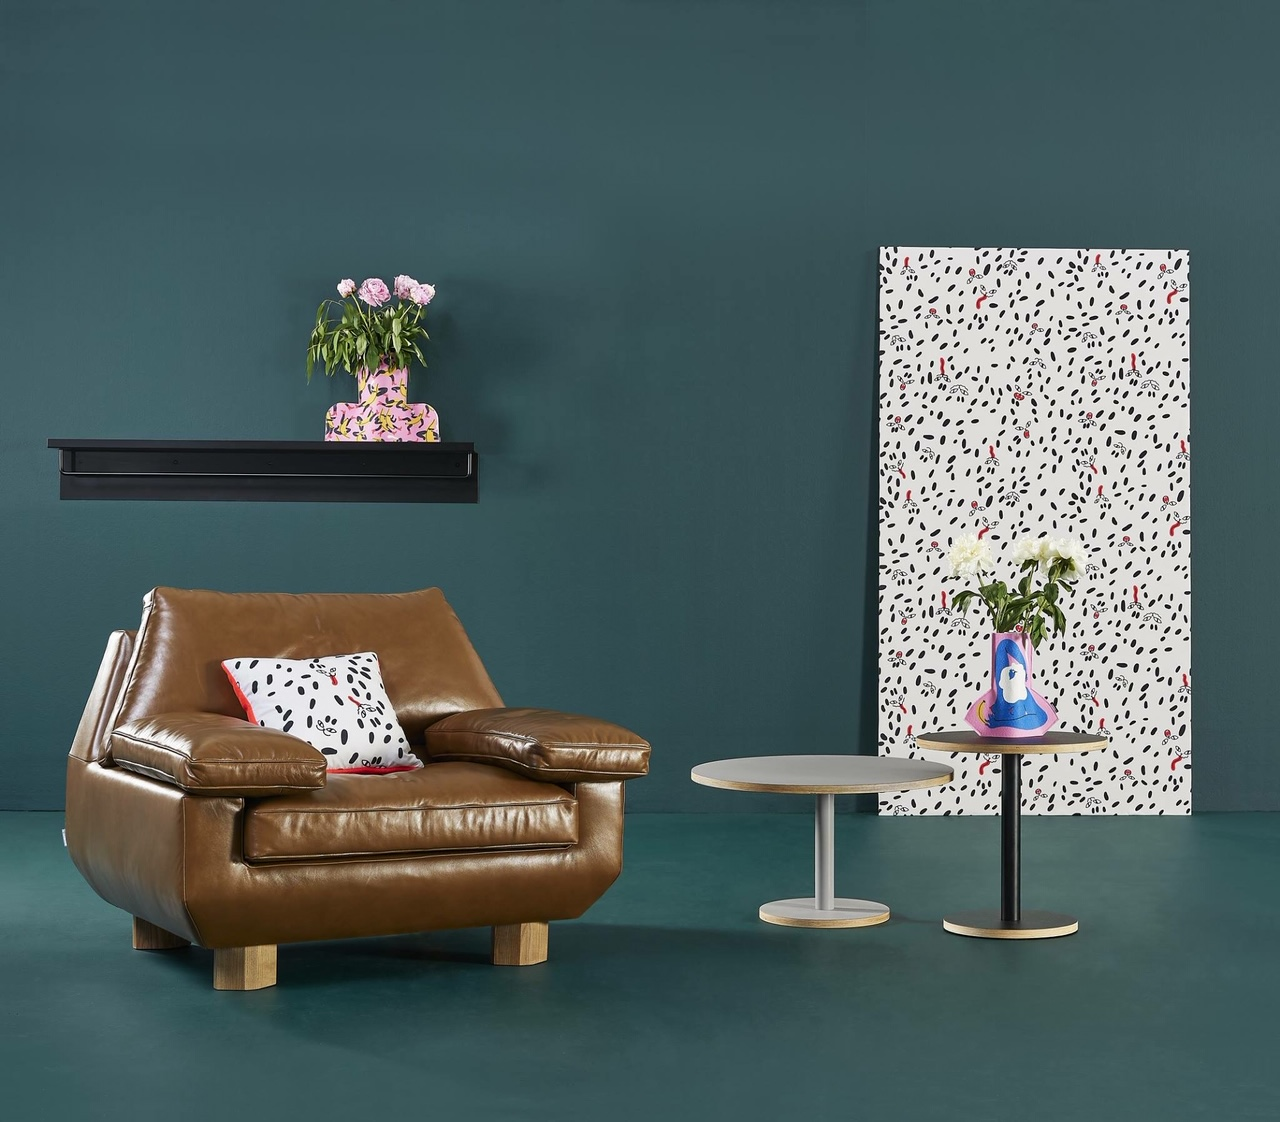 Sancal, DB and Dumbel